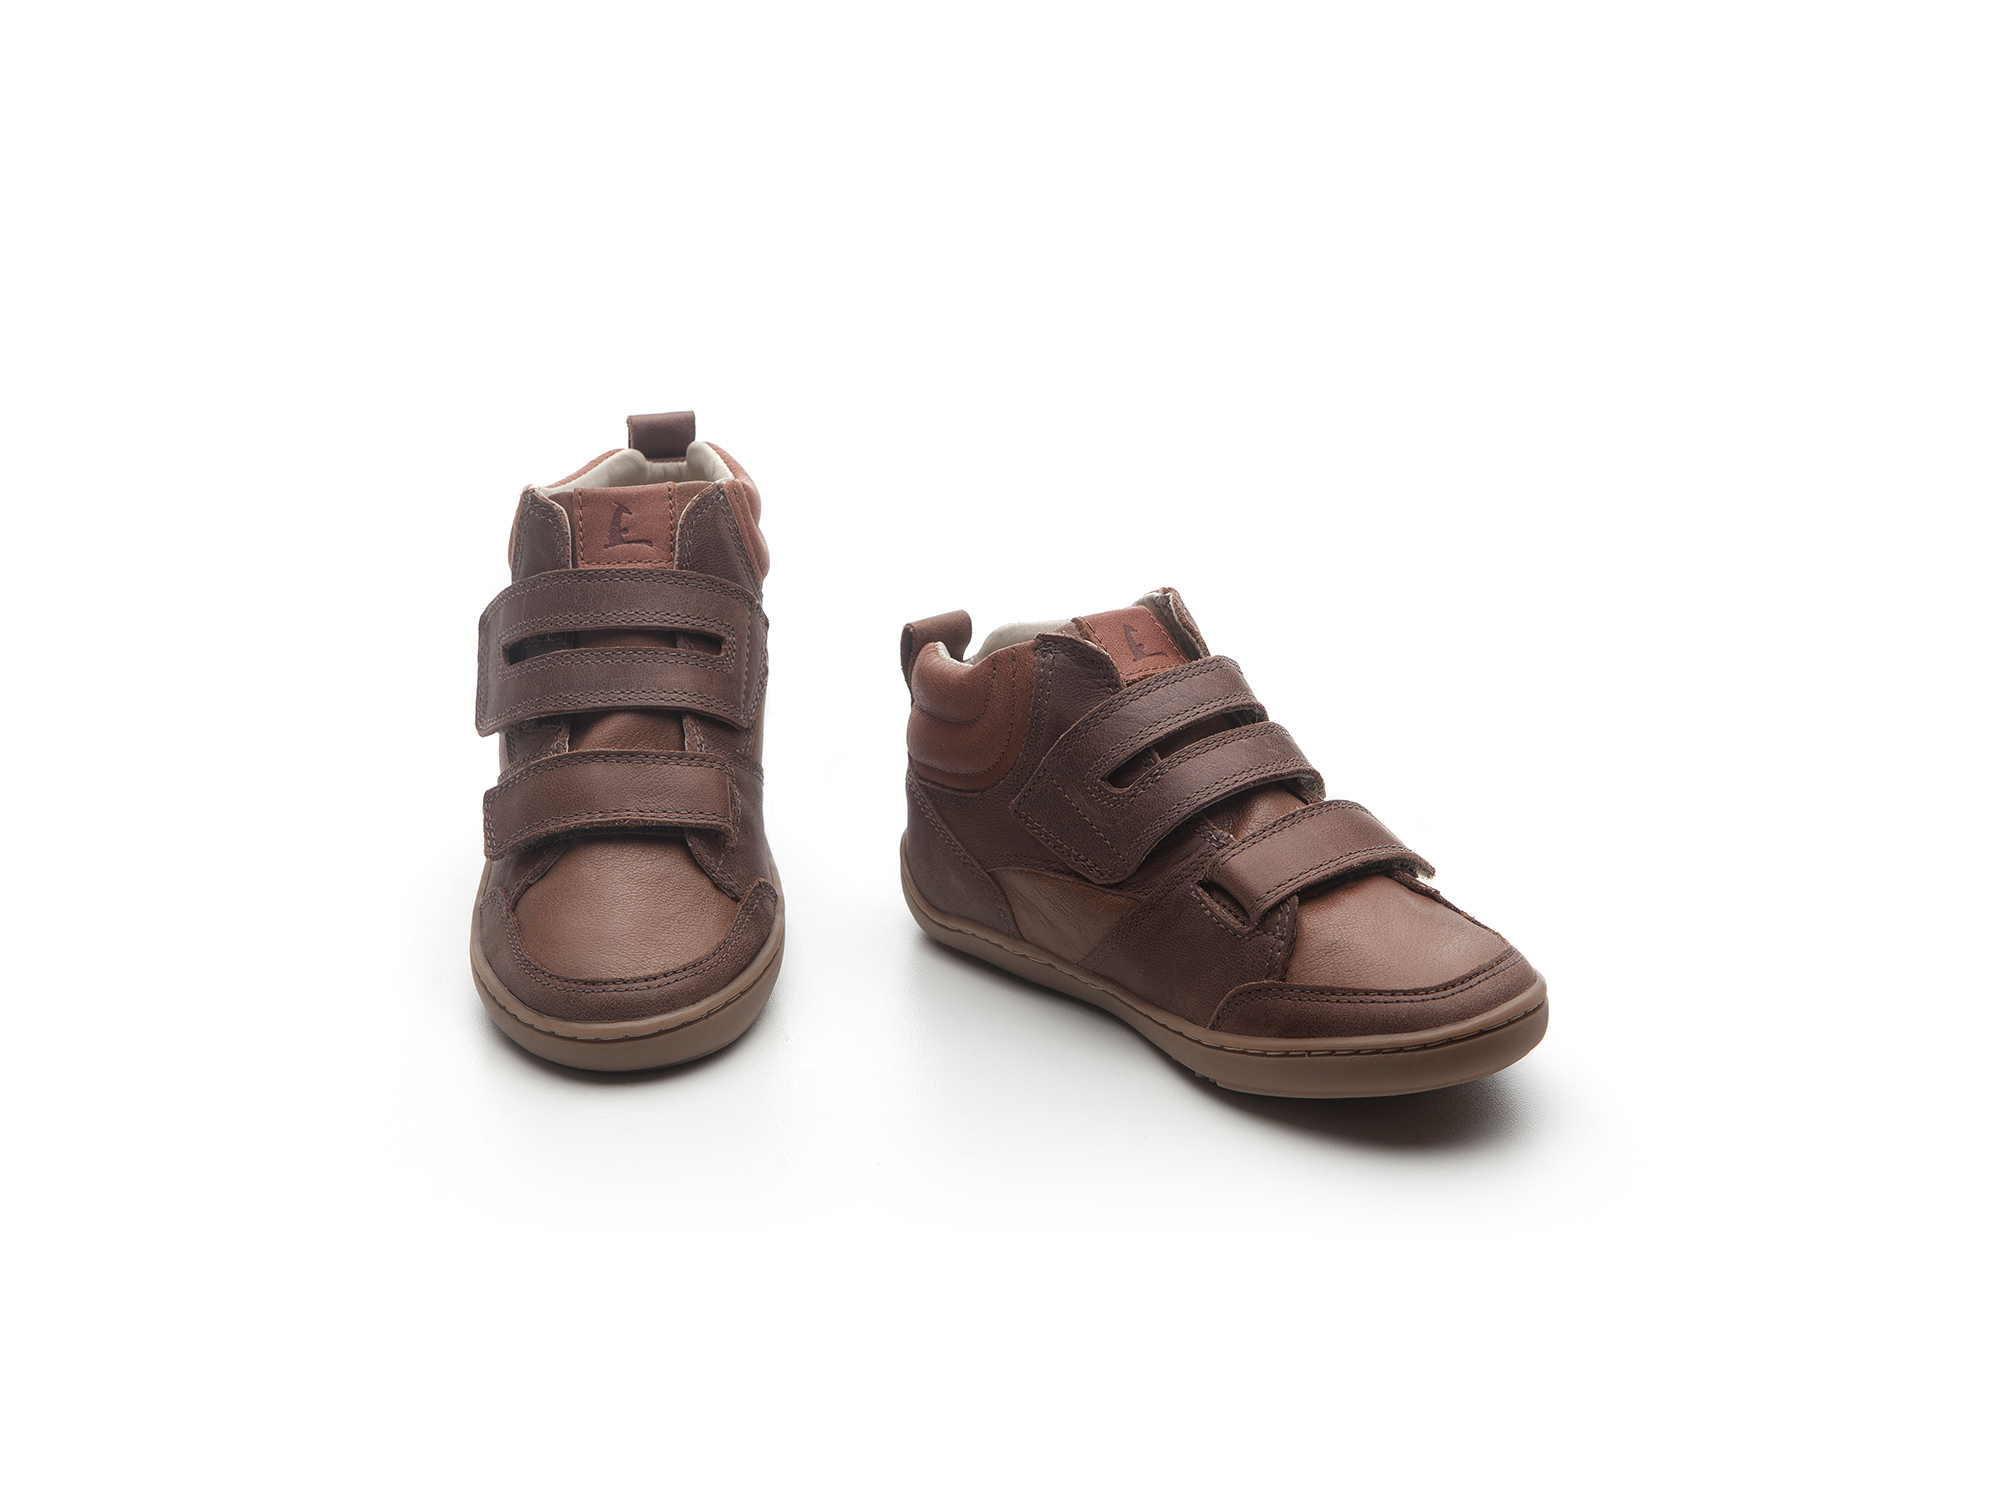 Bota T Surface Old Brown/ Whisky/ Burning Woo  Toddler 2 à 4 anos - 1